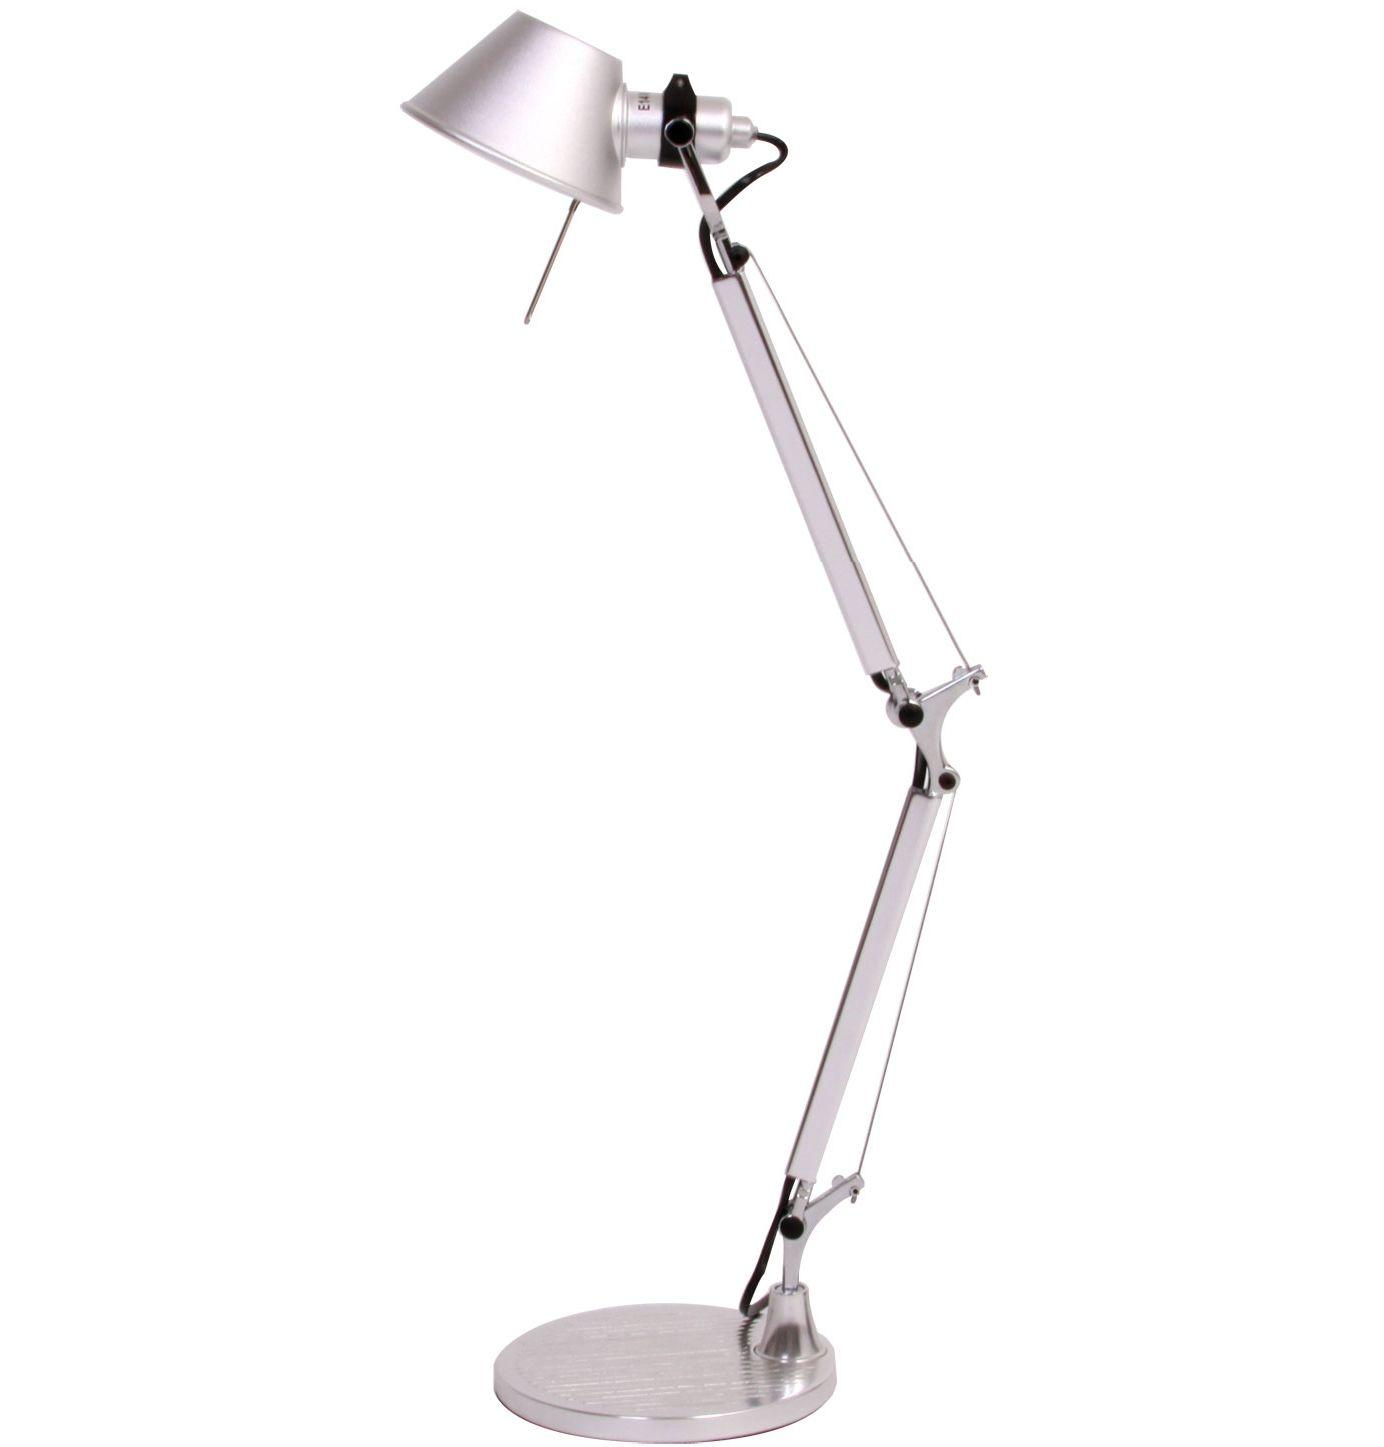 Replica De Lucchi And Fassina Tolomeo Desk Lamp Medium By De Lucchi And Fassina Matt Blatt Desk Lamp Lamp Table Lamp